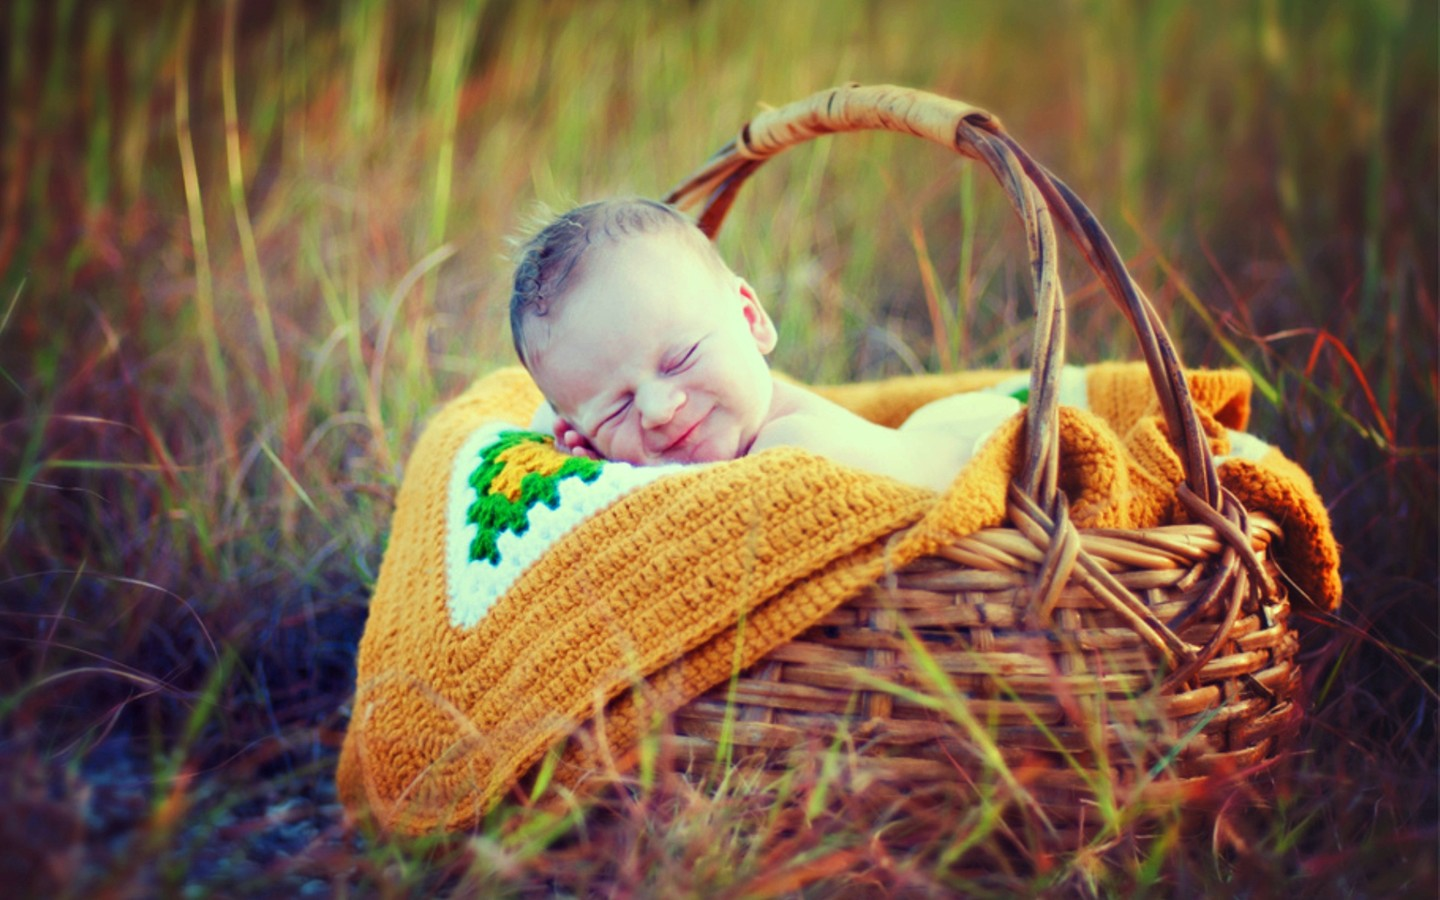 Cute Smiley Sleeping Baby In Basket HD Wallpaper | Cute Little Babies